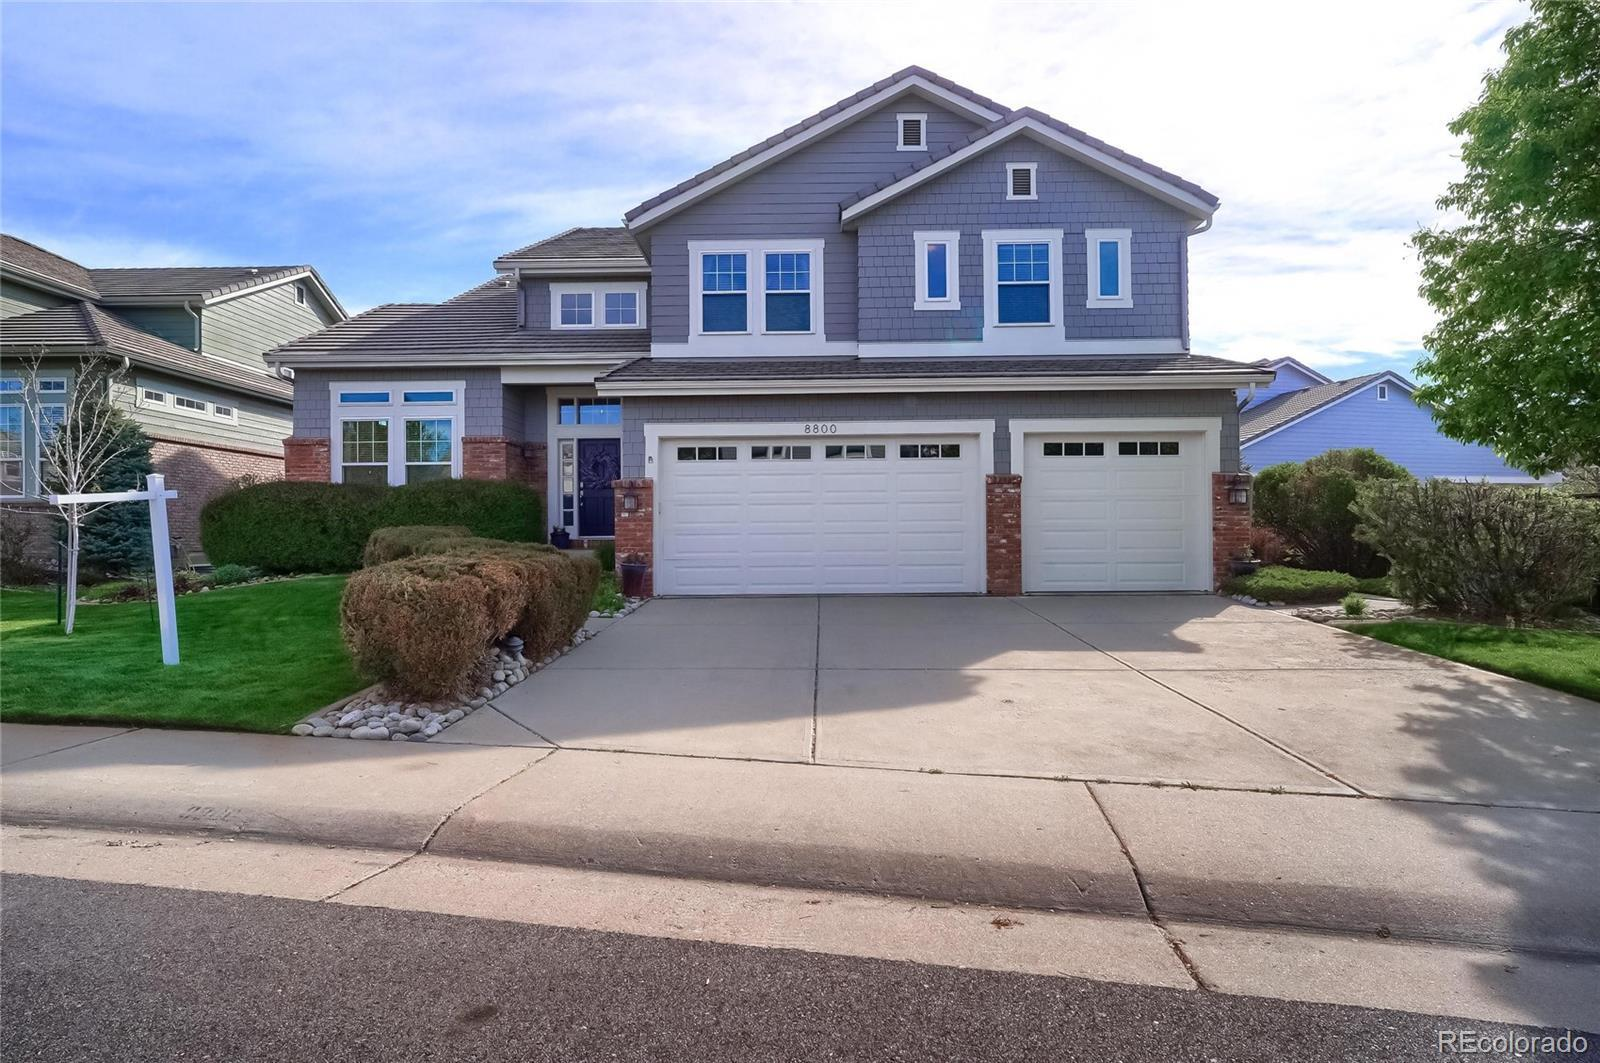 8800 Greensborough Place, Highlands Ranch, CO 80129 - MLS#: 8794096